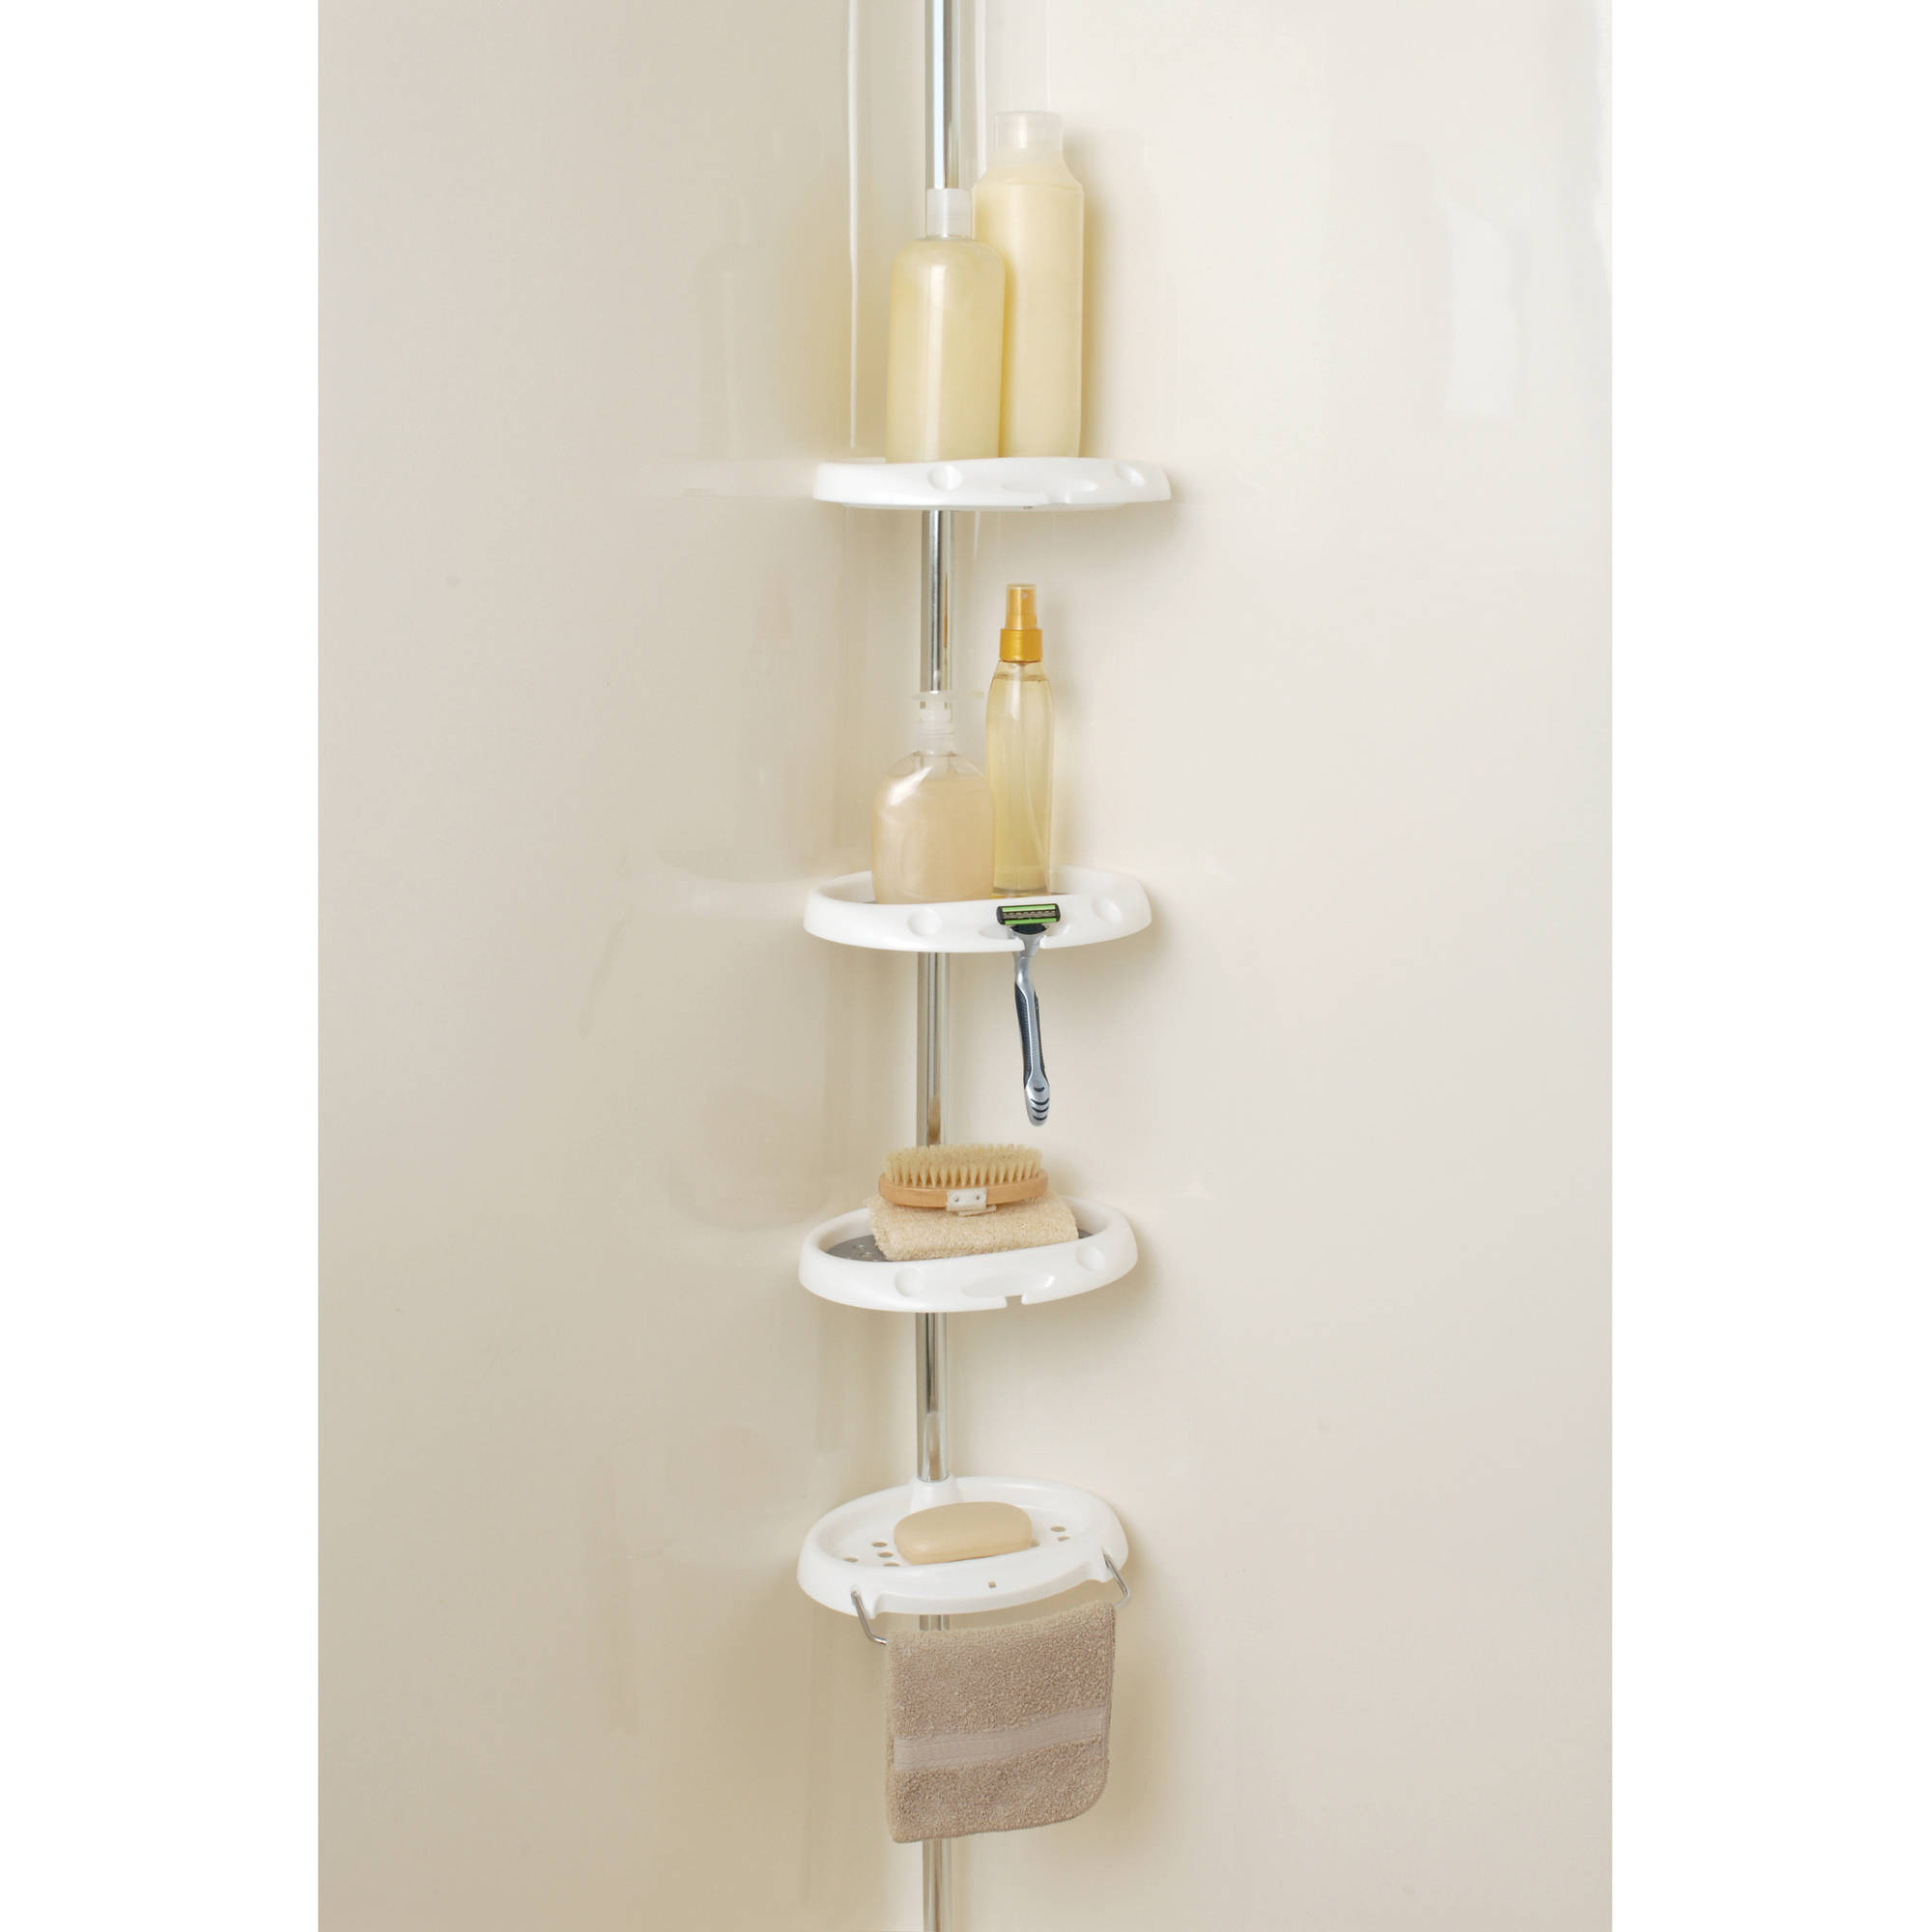 Tension Shower Caddy - White